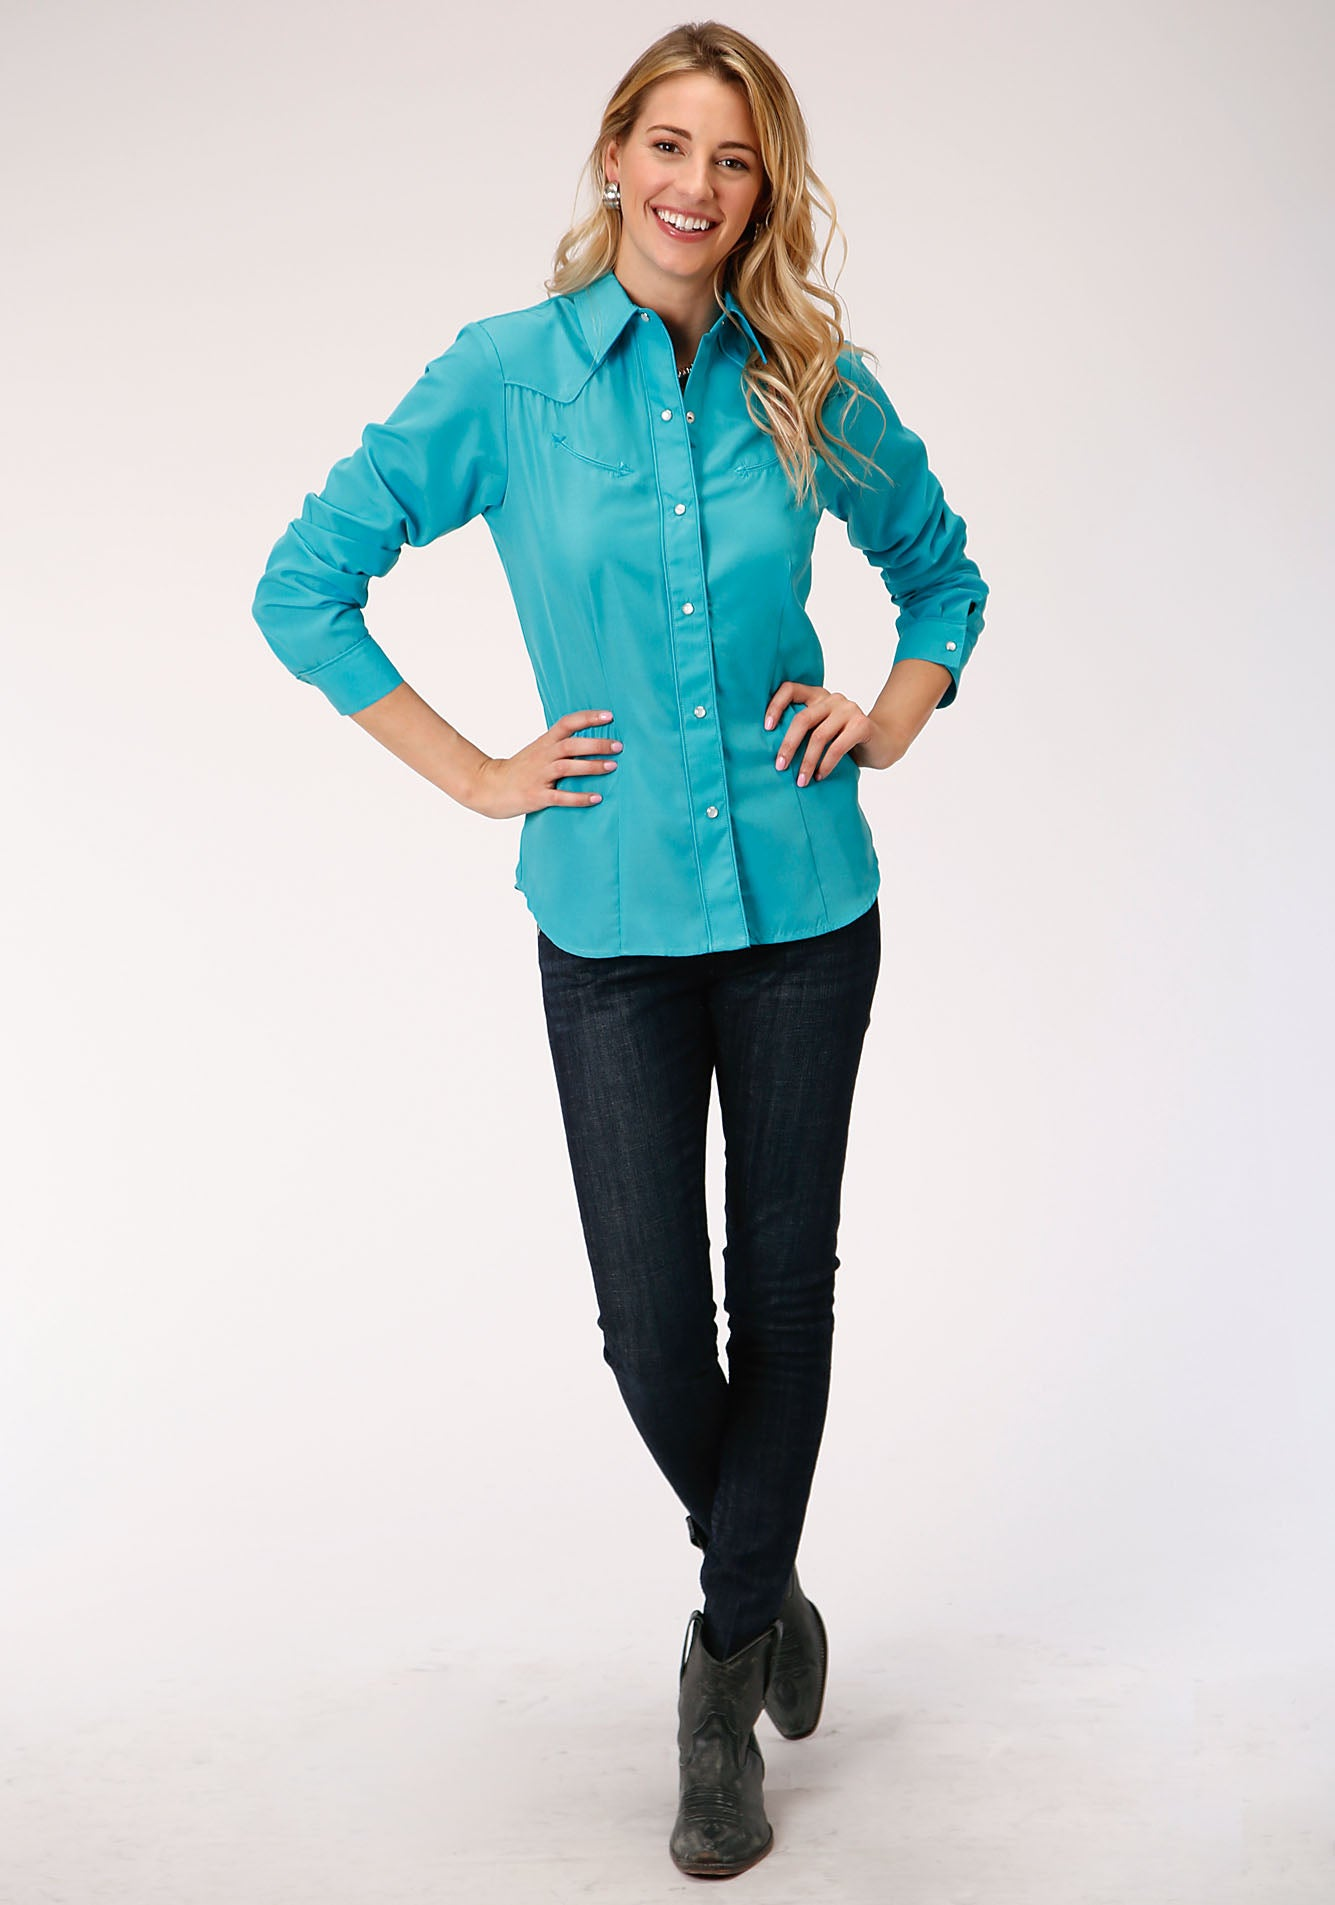 ROPER WOMENS BLUE 00148B SOLID BROADCLOTH - TURQUOISE KARMAN SPECIAL STYLES LONG SLEEVE